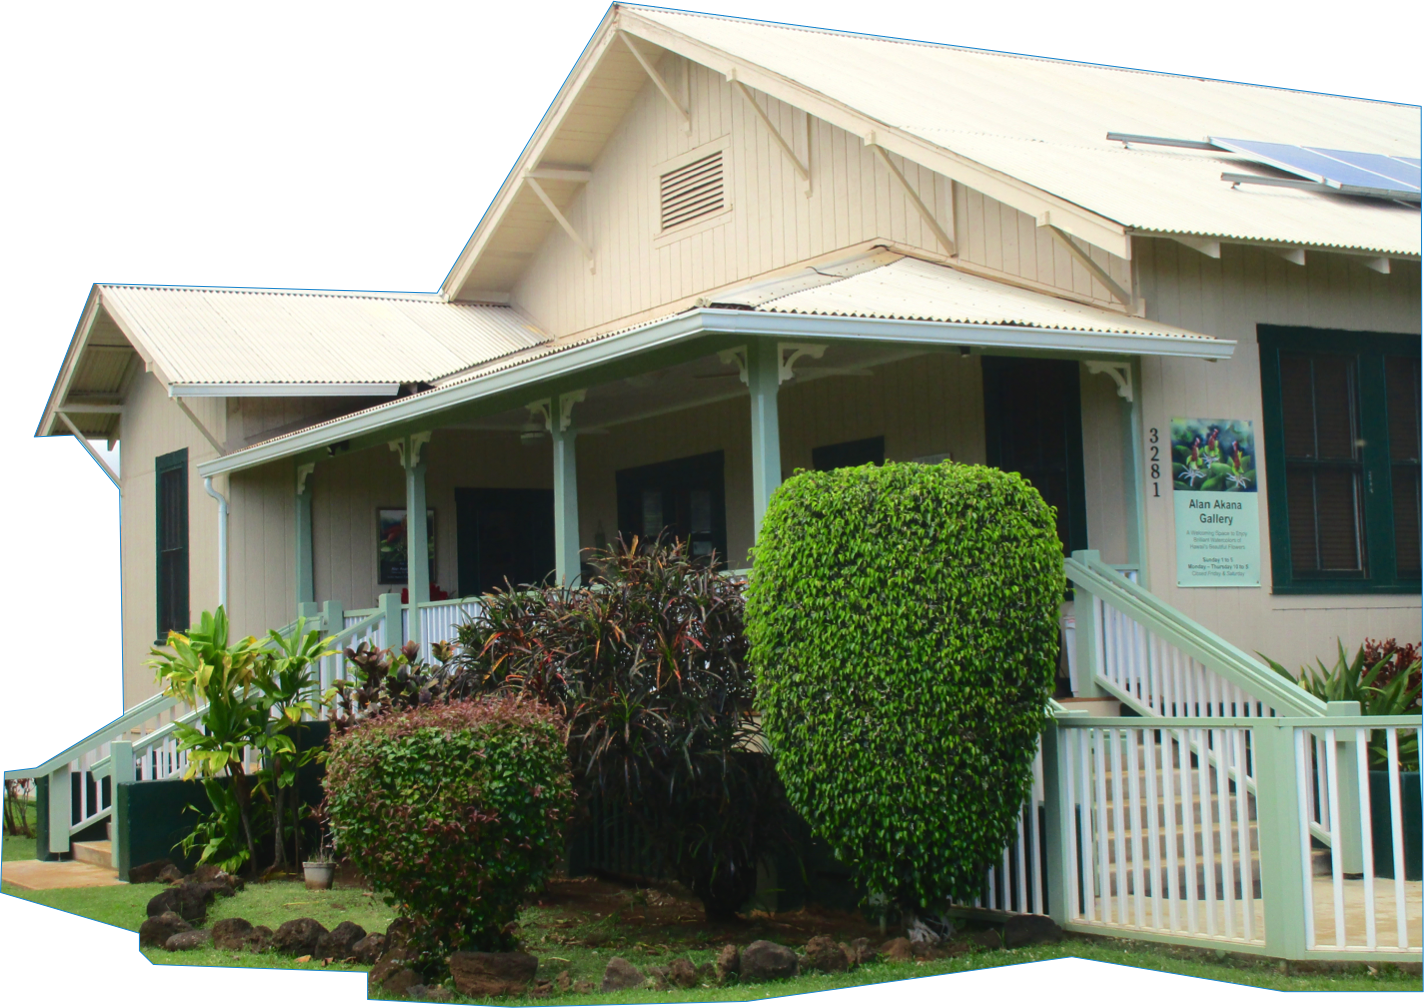 Alan Akana Gallery is located in the historic Smith Memorial Parsonage at 3281 Waikomo Road, Koloa HI.